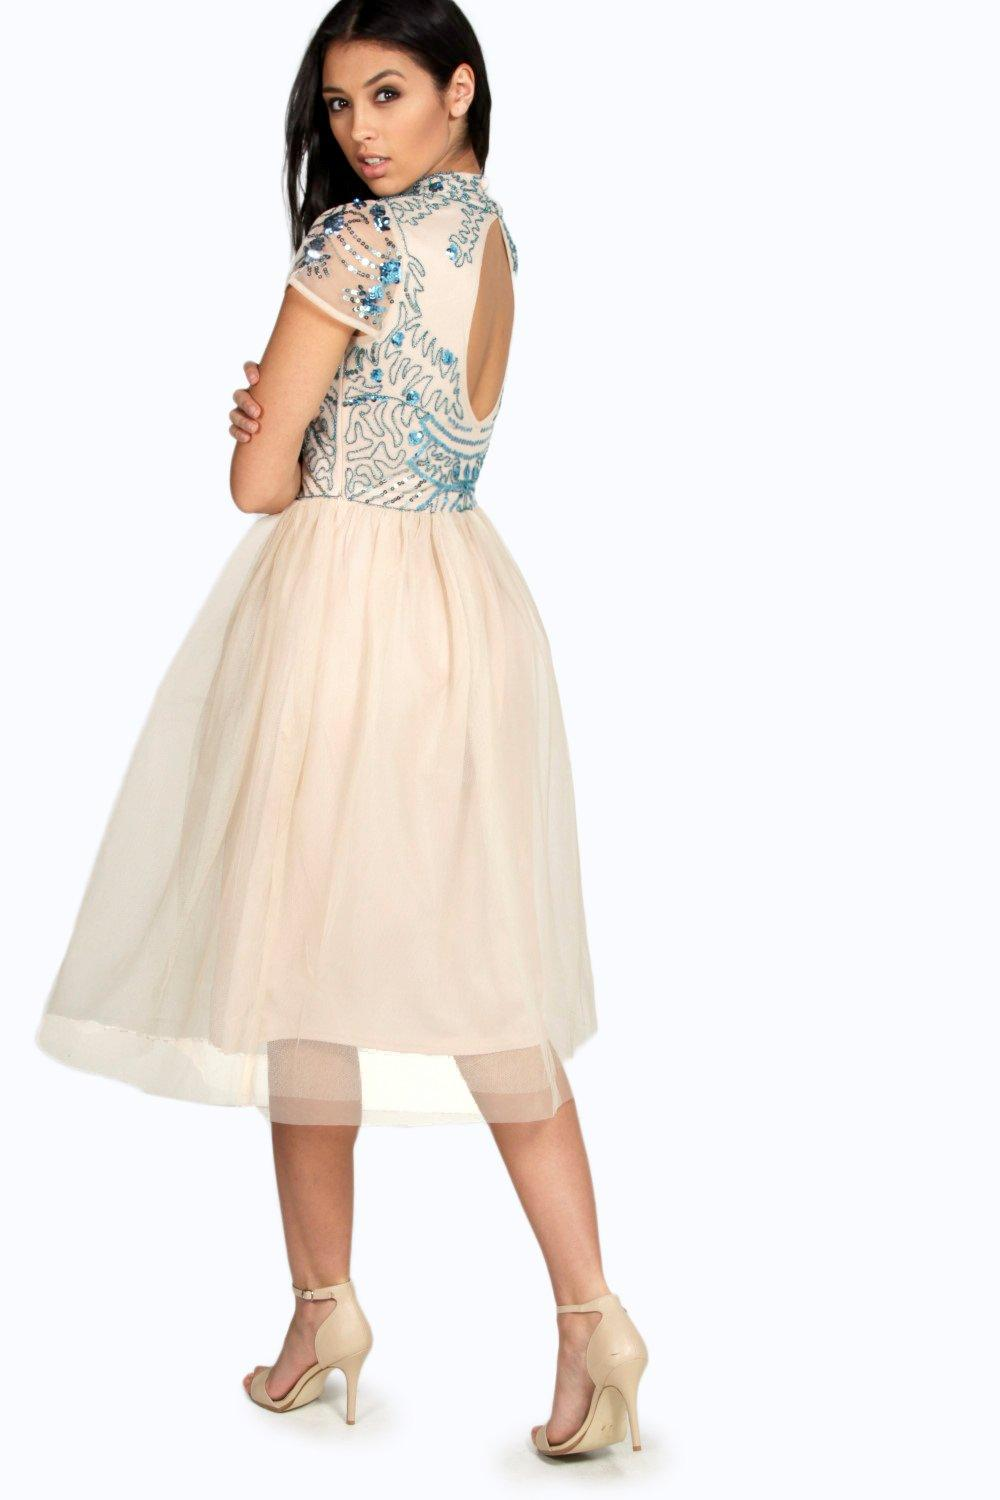 Boohoo womens boutique ely embellished top tutu skirt for Boohoo dresses for weddings